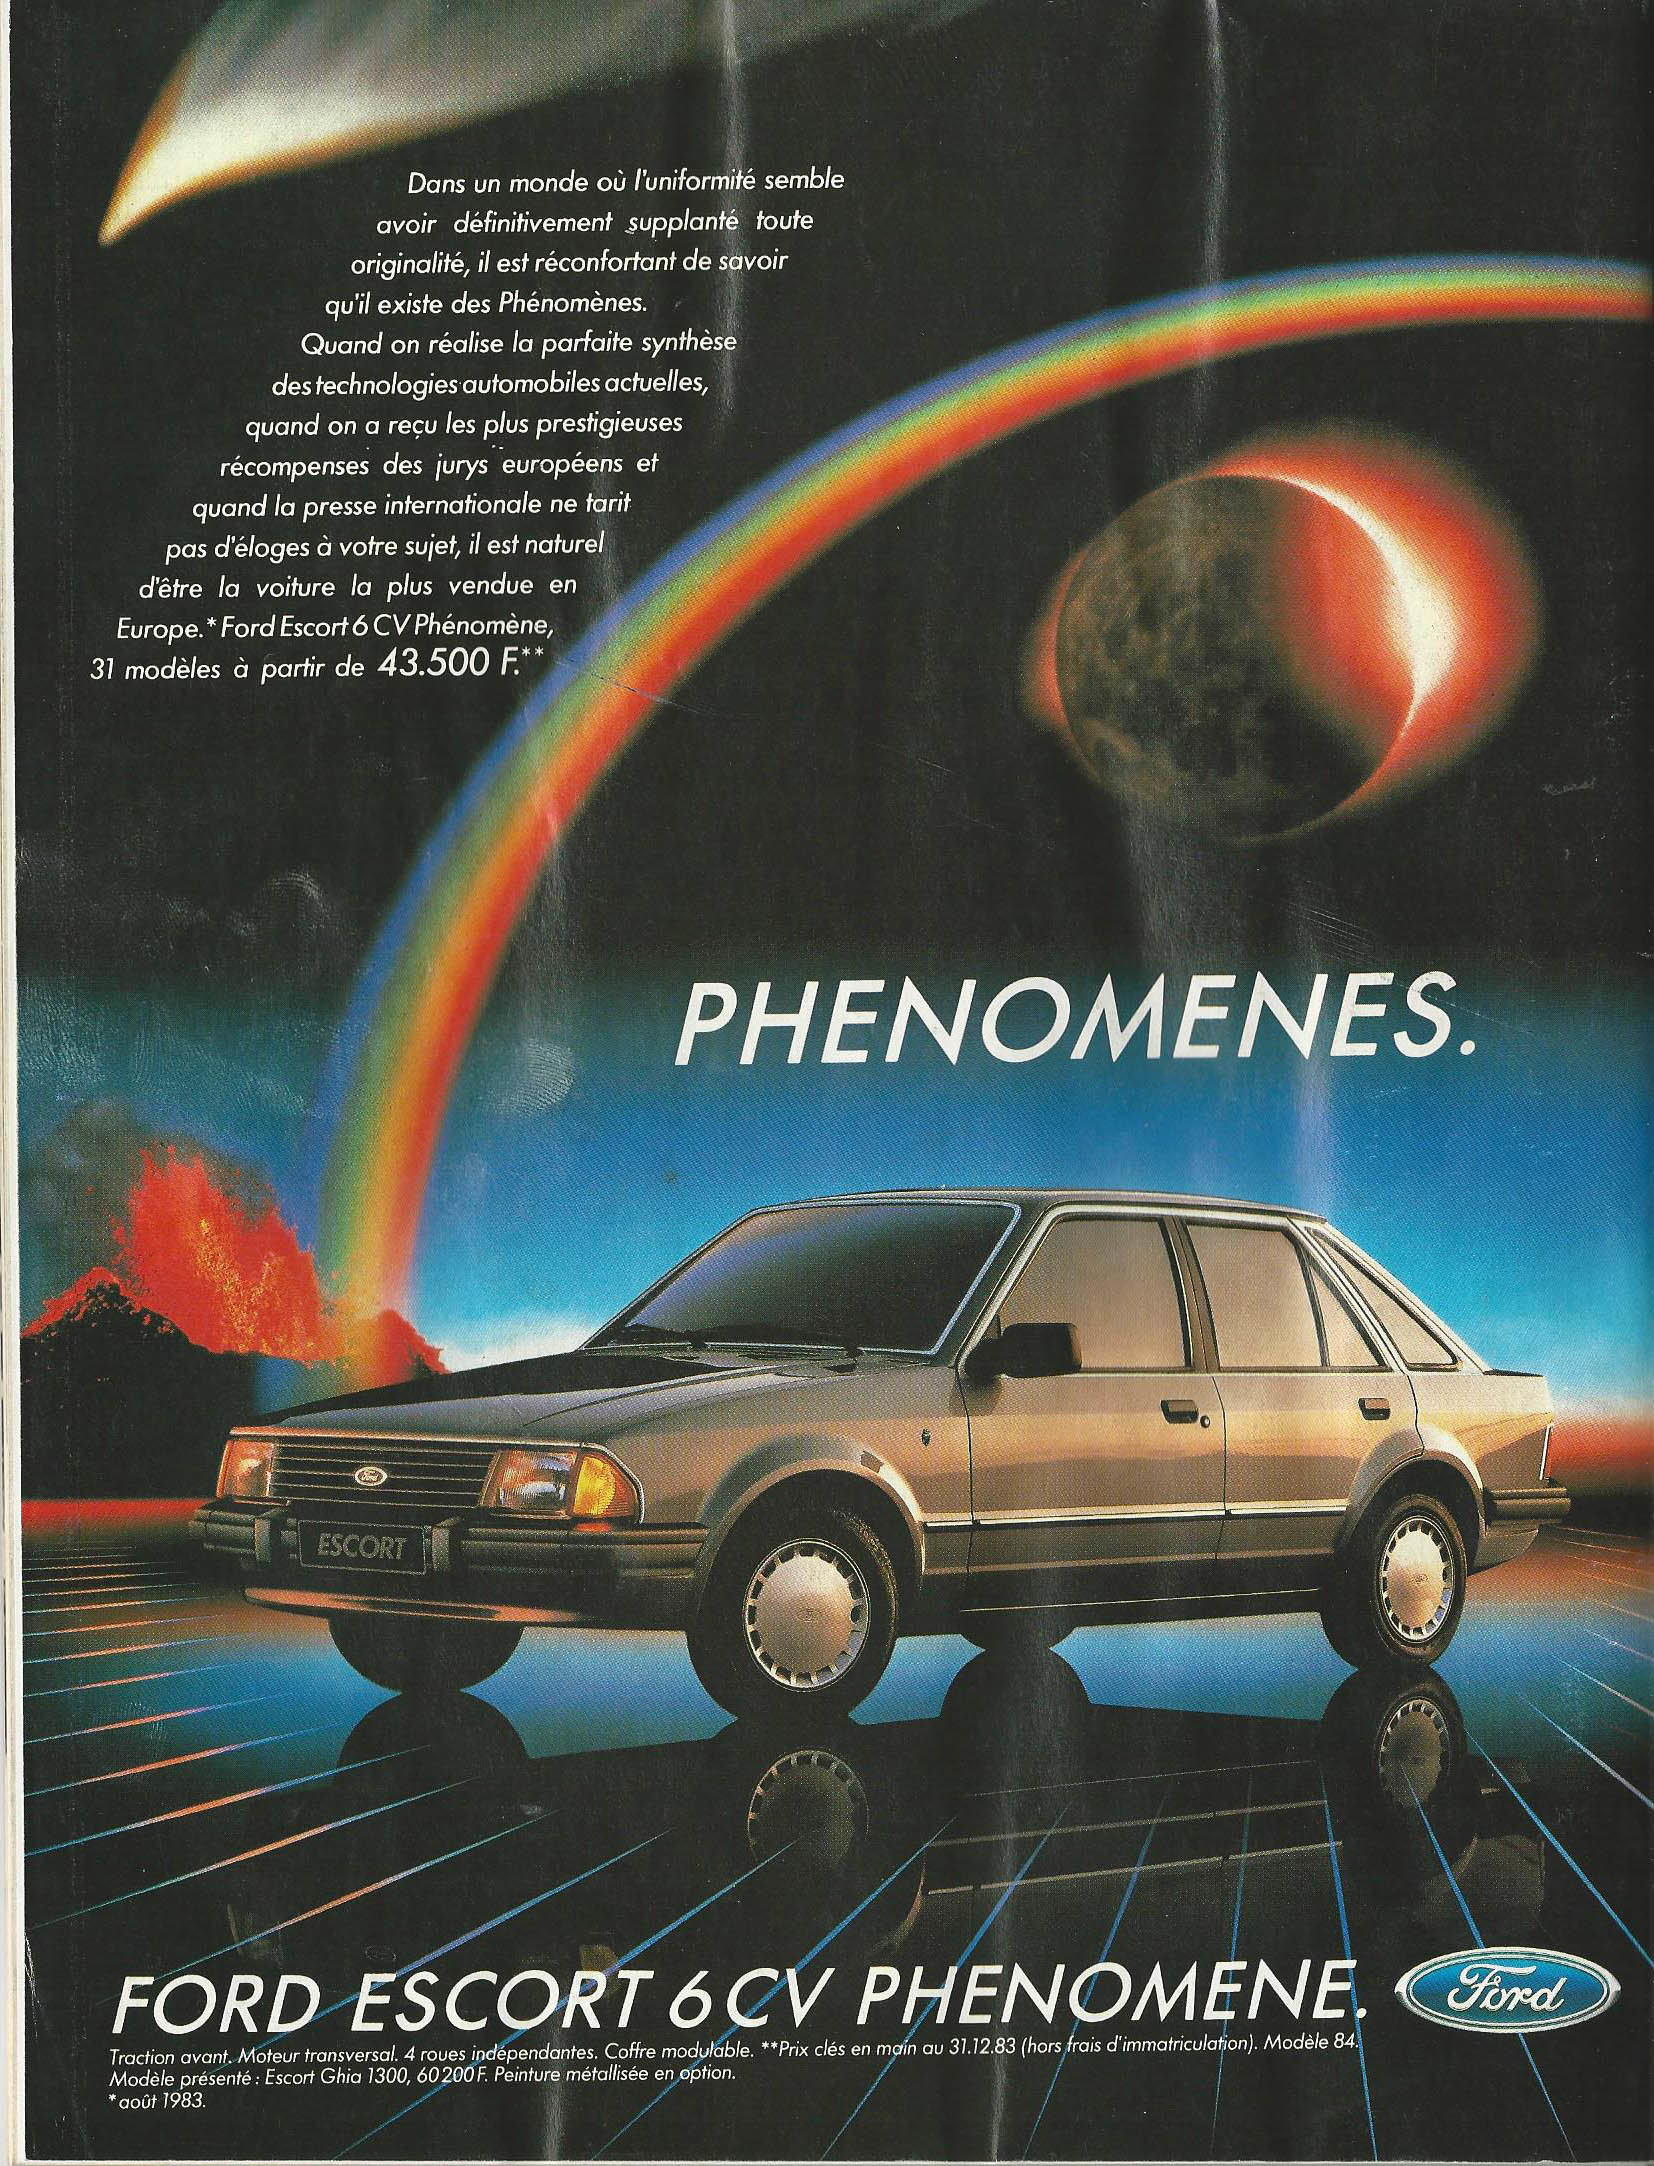 Moniteur Automobile 01 - 08 Mars 1984 (52)